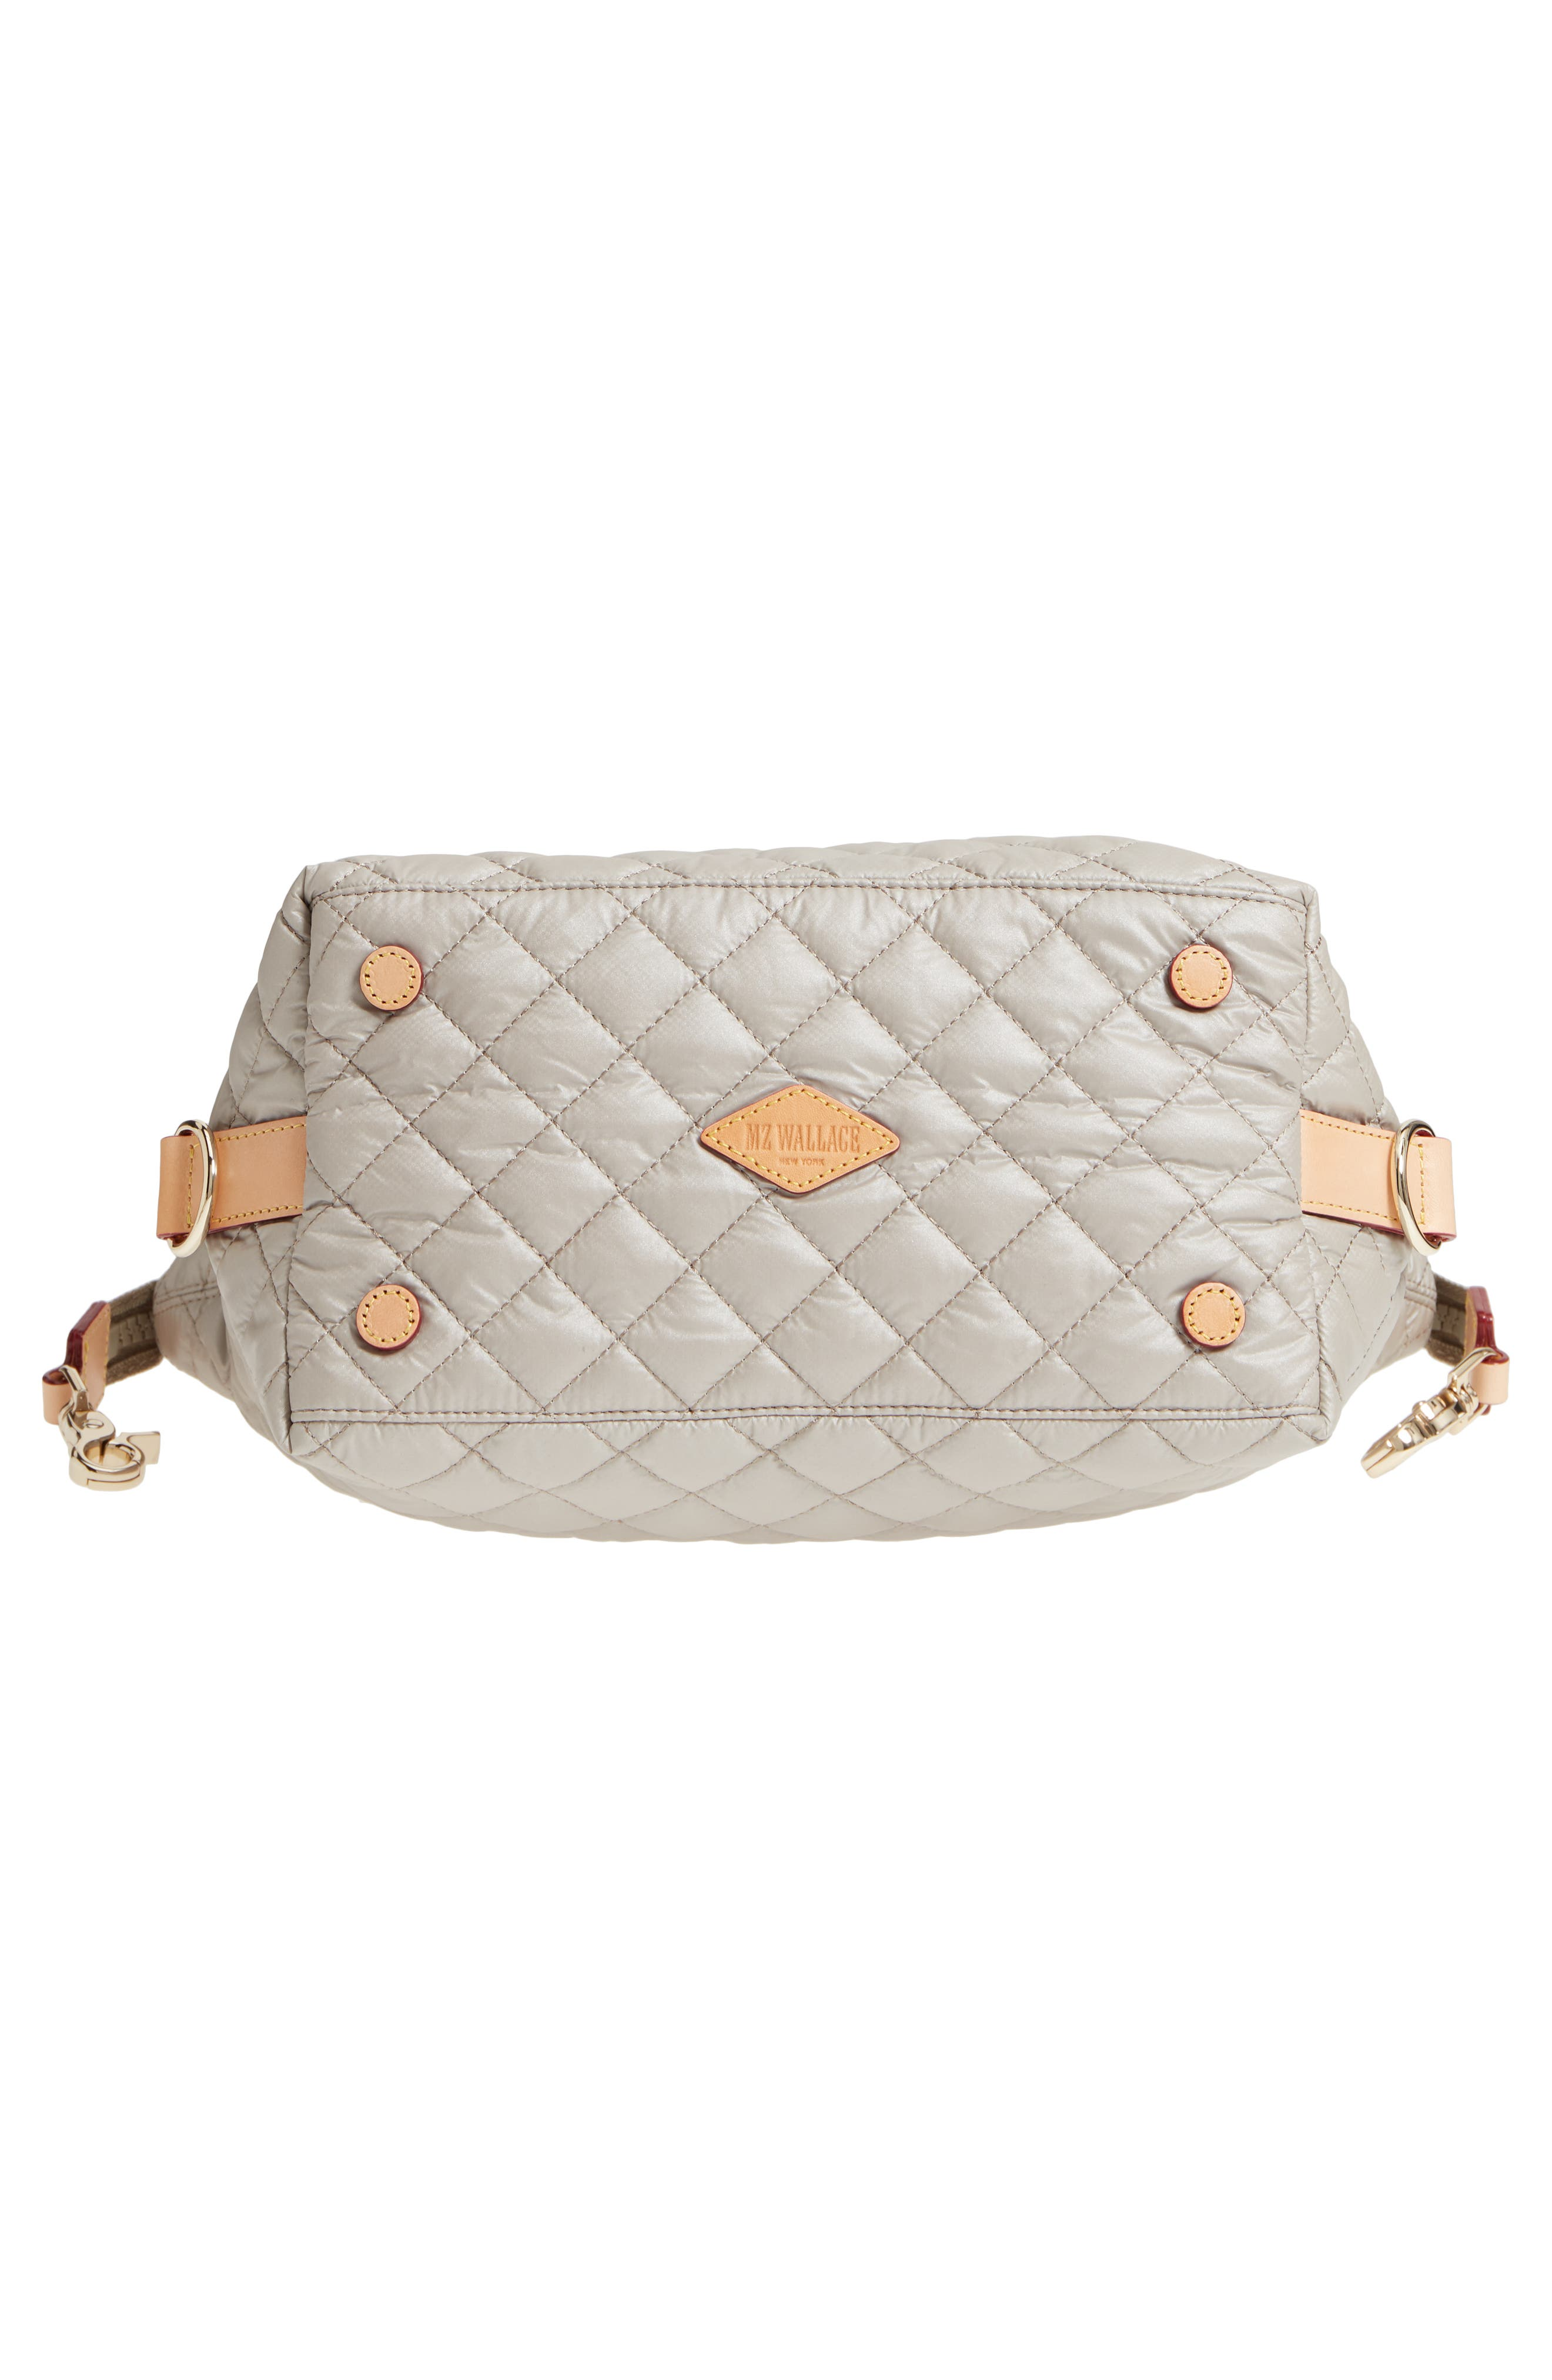 Small Sutton Quilted Oxford Nylon Tote,                             Alternate thumbnail 6, color,                             Atmosphere Metallic